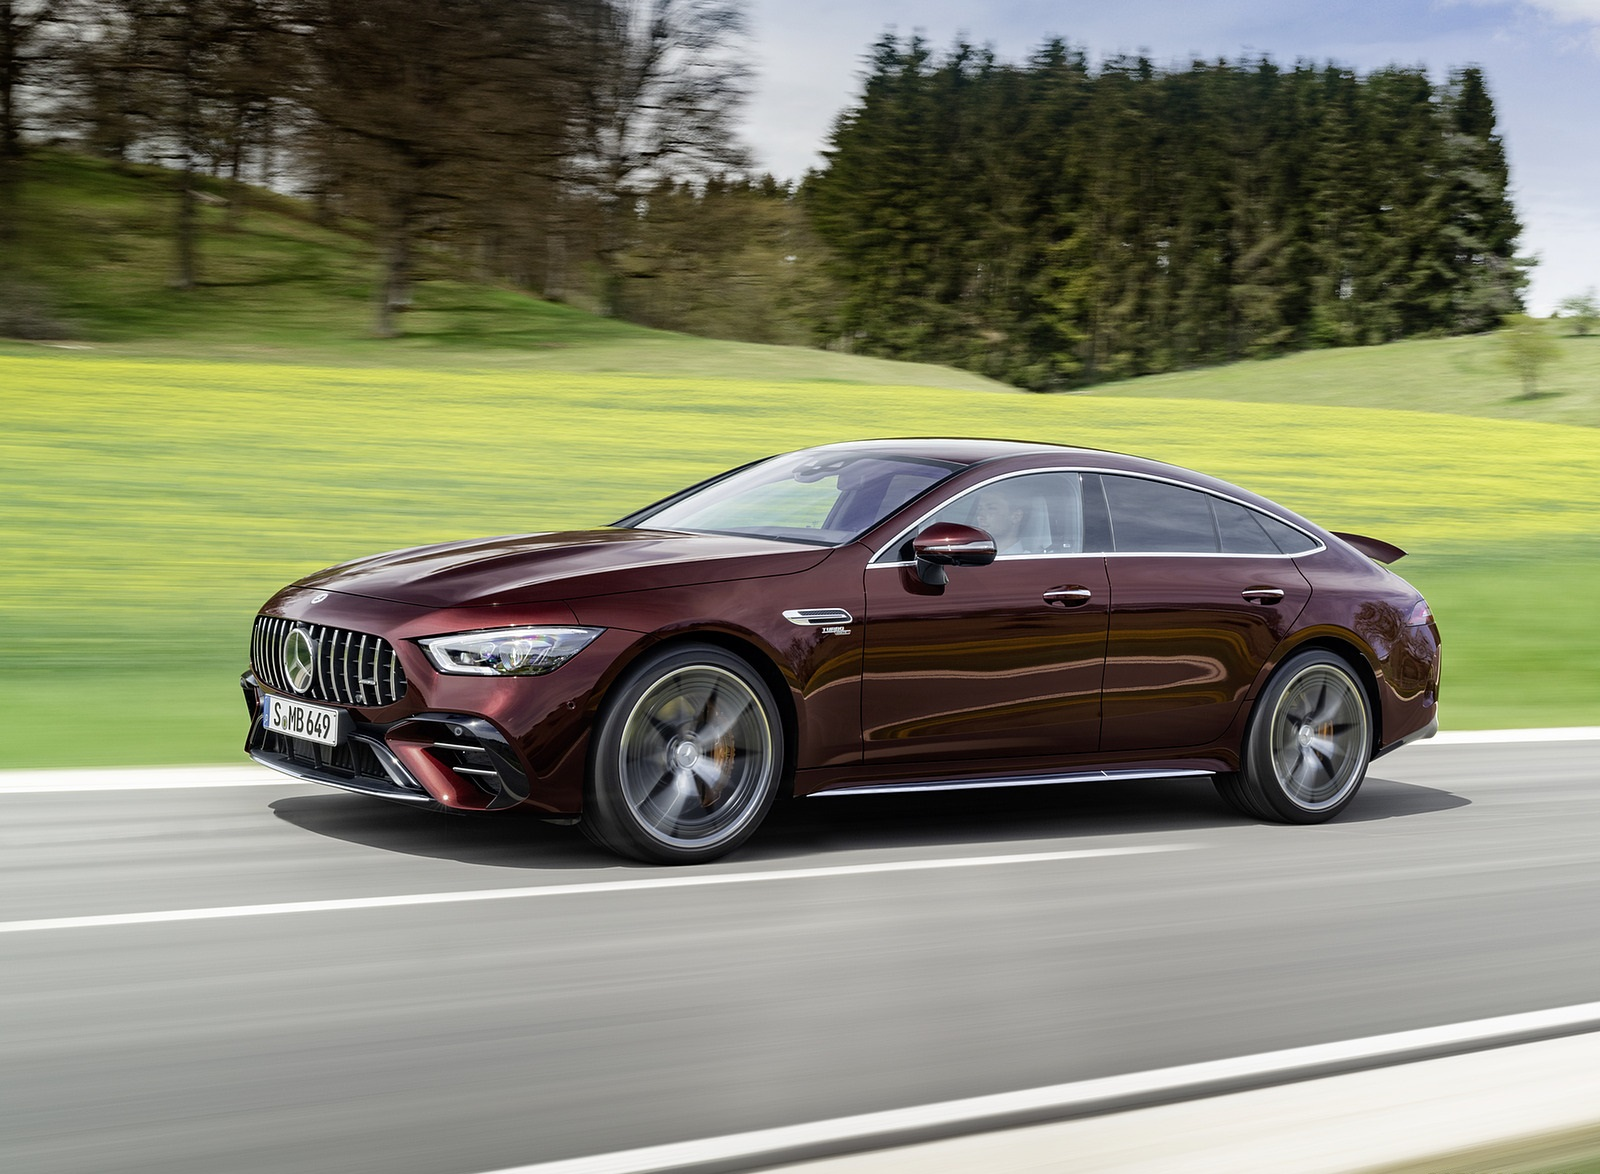 2022 Mercedes-AMG GT 53 4MATIC+ 4-Door Coupe (Color: Rubellite Red) Front Three-Quarter Wallpapers (3)